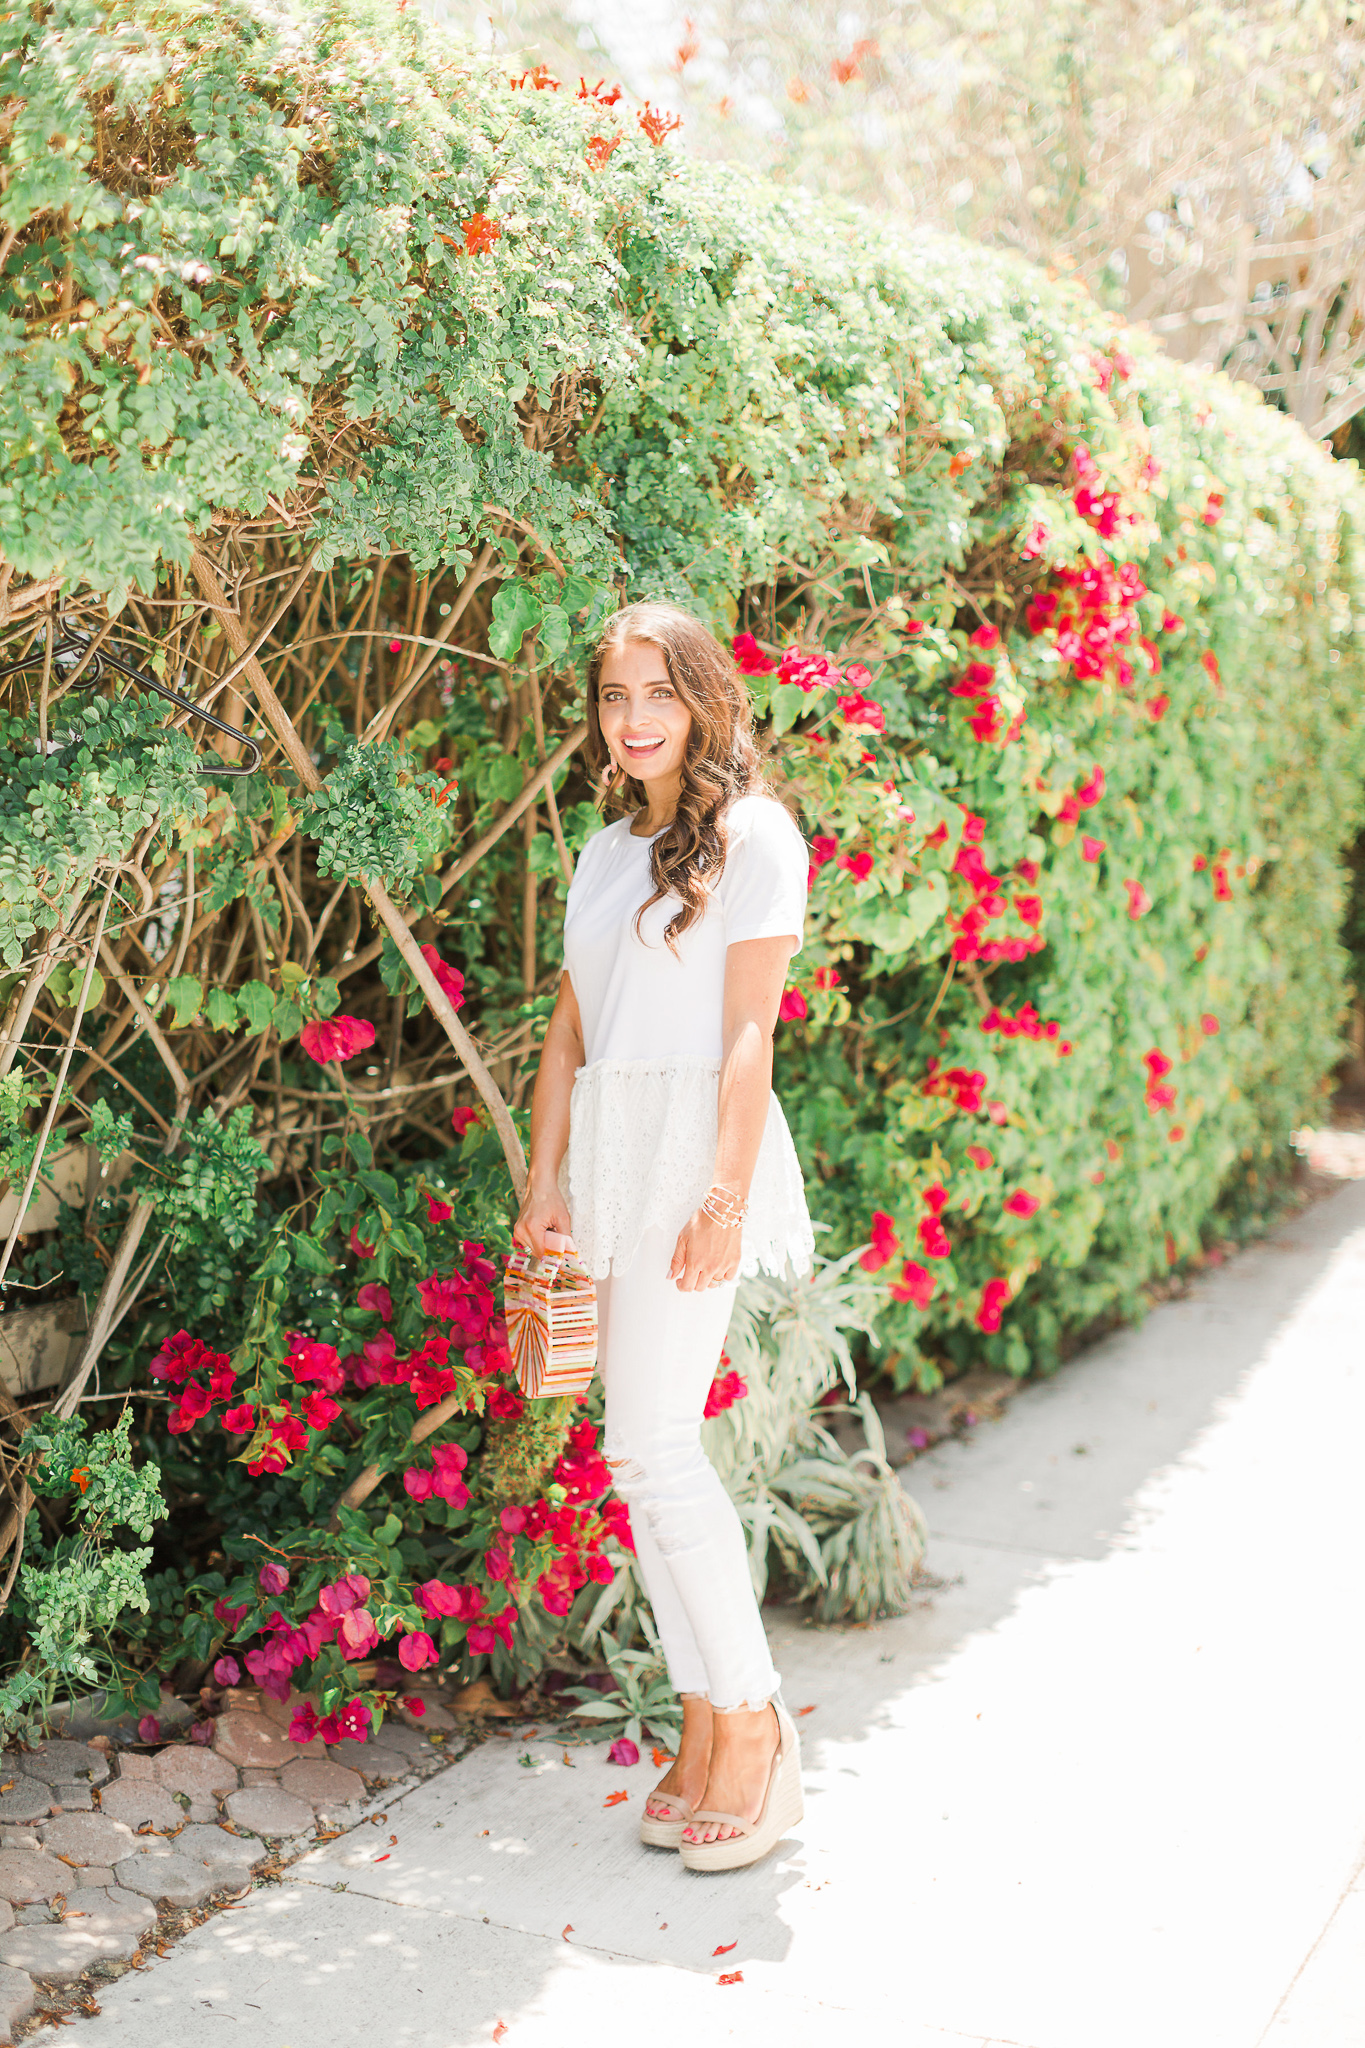 4 tips to wear white on white featured by popular Orange County fashion blogger, Maxie Elle